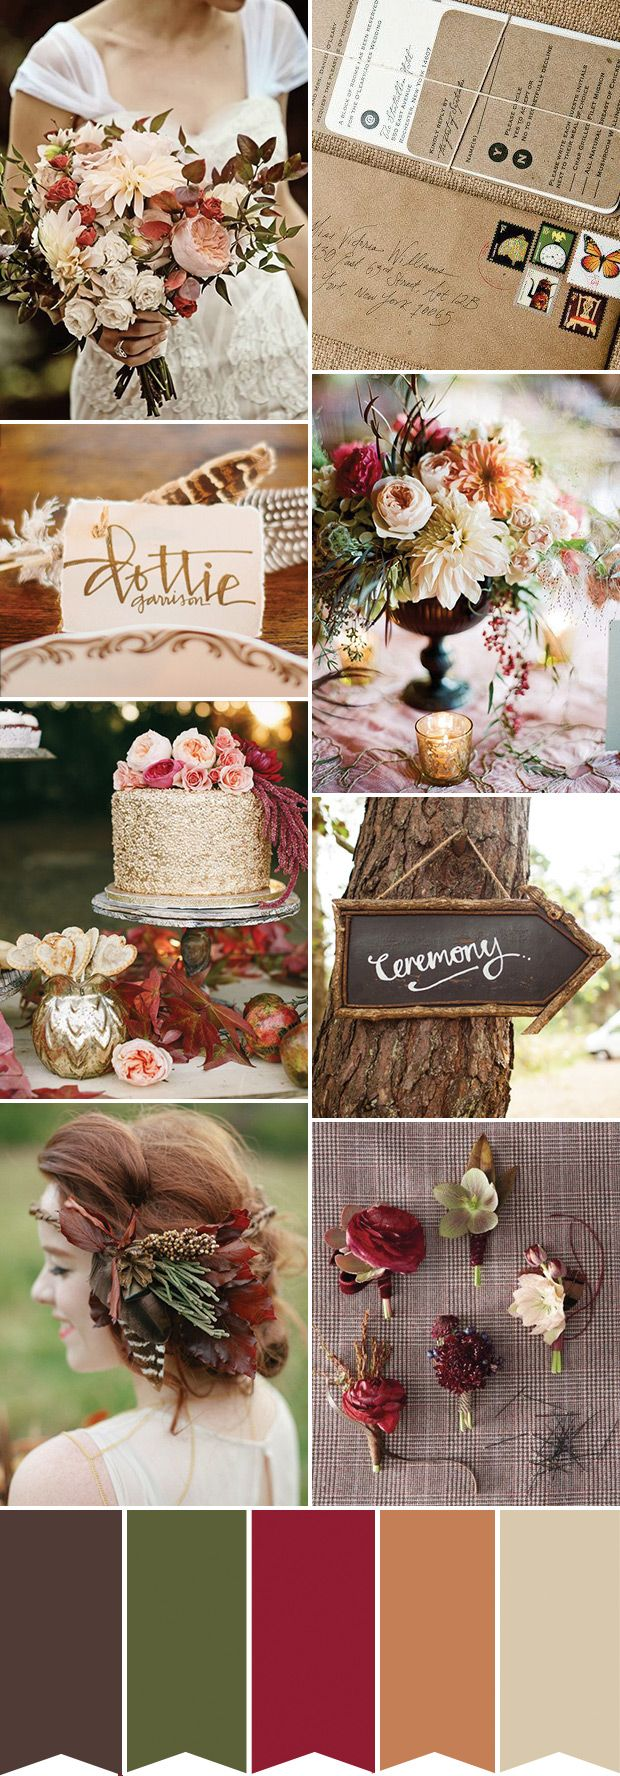 Rustic Chic Autumn and Fall Wedding Inspiration | see how to create this look over on www.onefabday.com